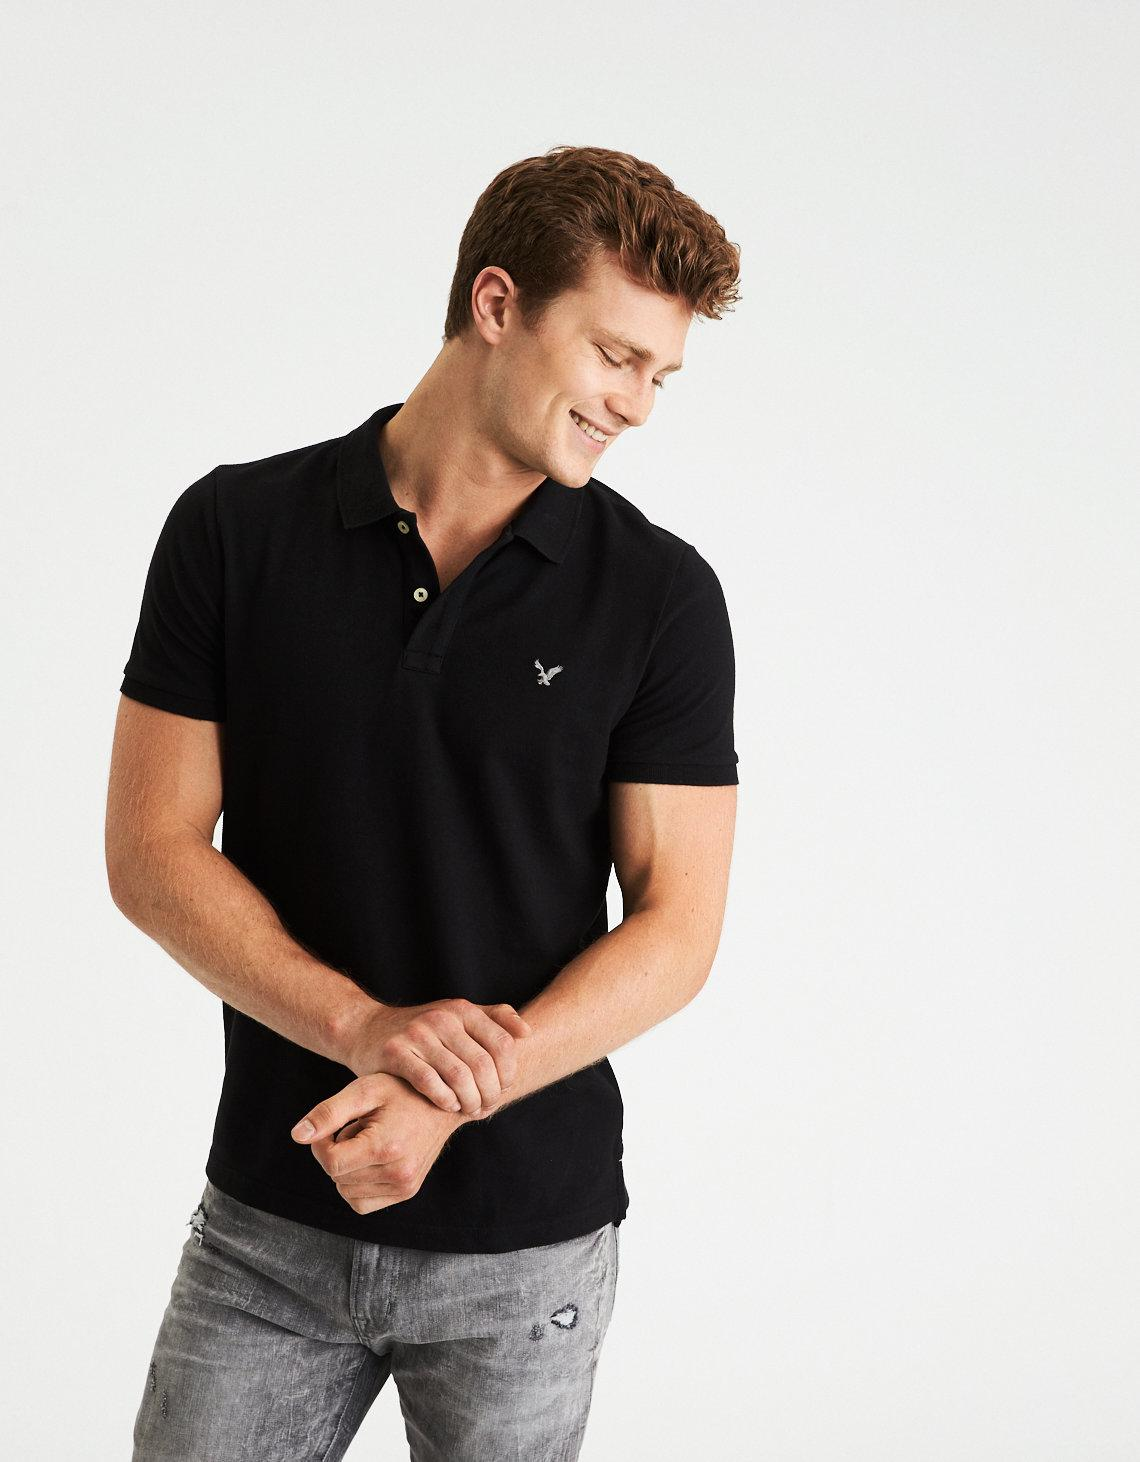 bf269ea2 American Eagle Ae Stretch Pique Logo Polo Shirt in Black for Men - Lyst